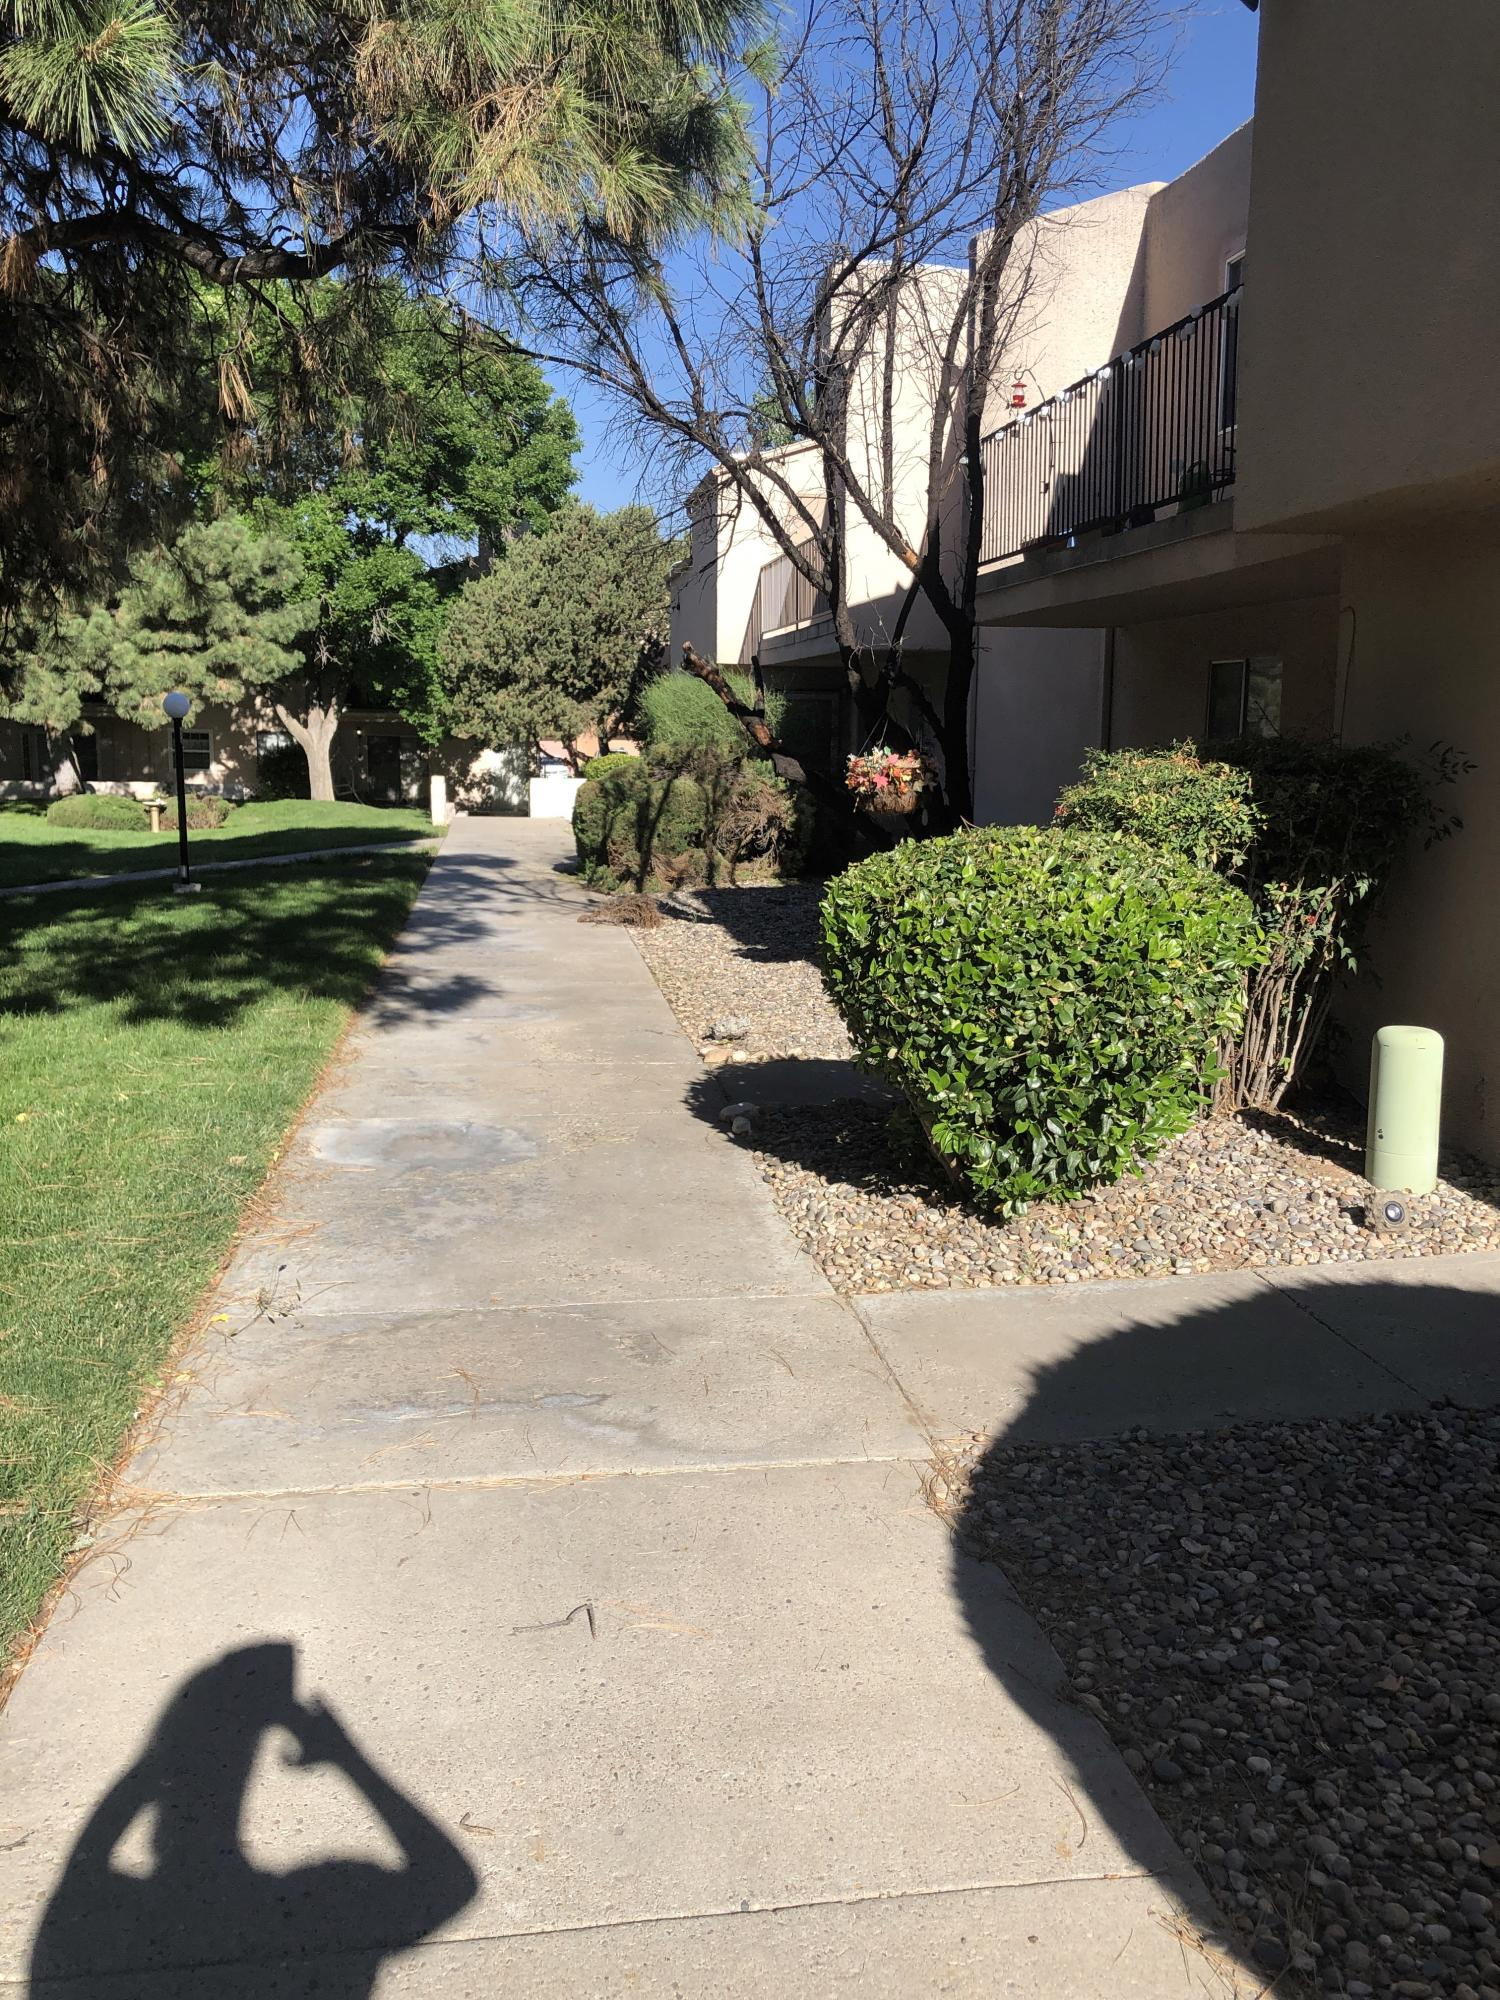 Cute 2 bedroom, 1.5 bath with East and West balconies.  Open kitchen to informal dining room and large Great room.  Nice location with covered carport and gated community pool.  Near schools, shopping and restaurants.